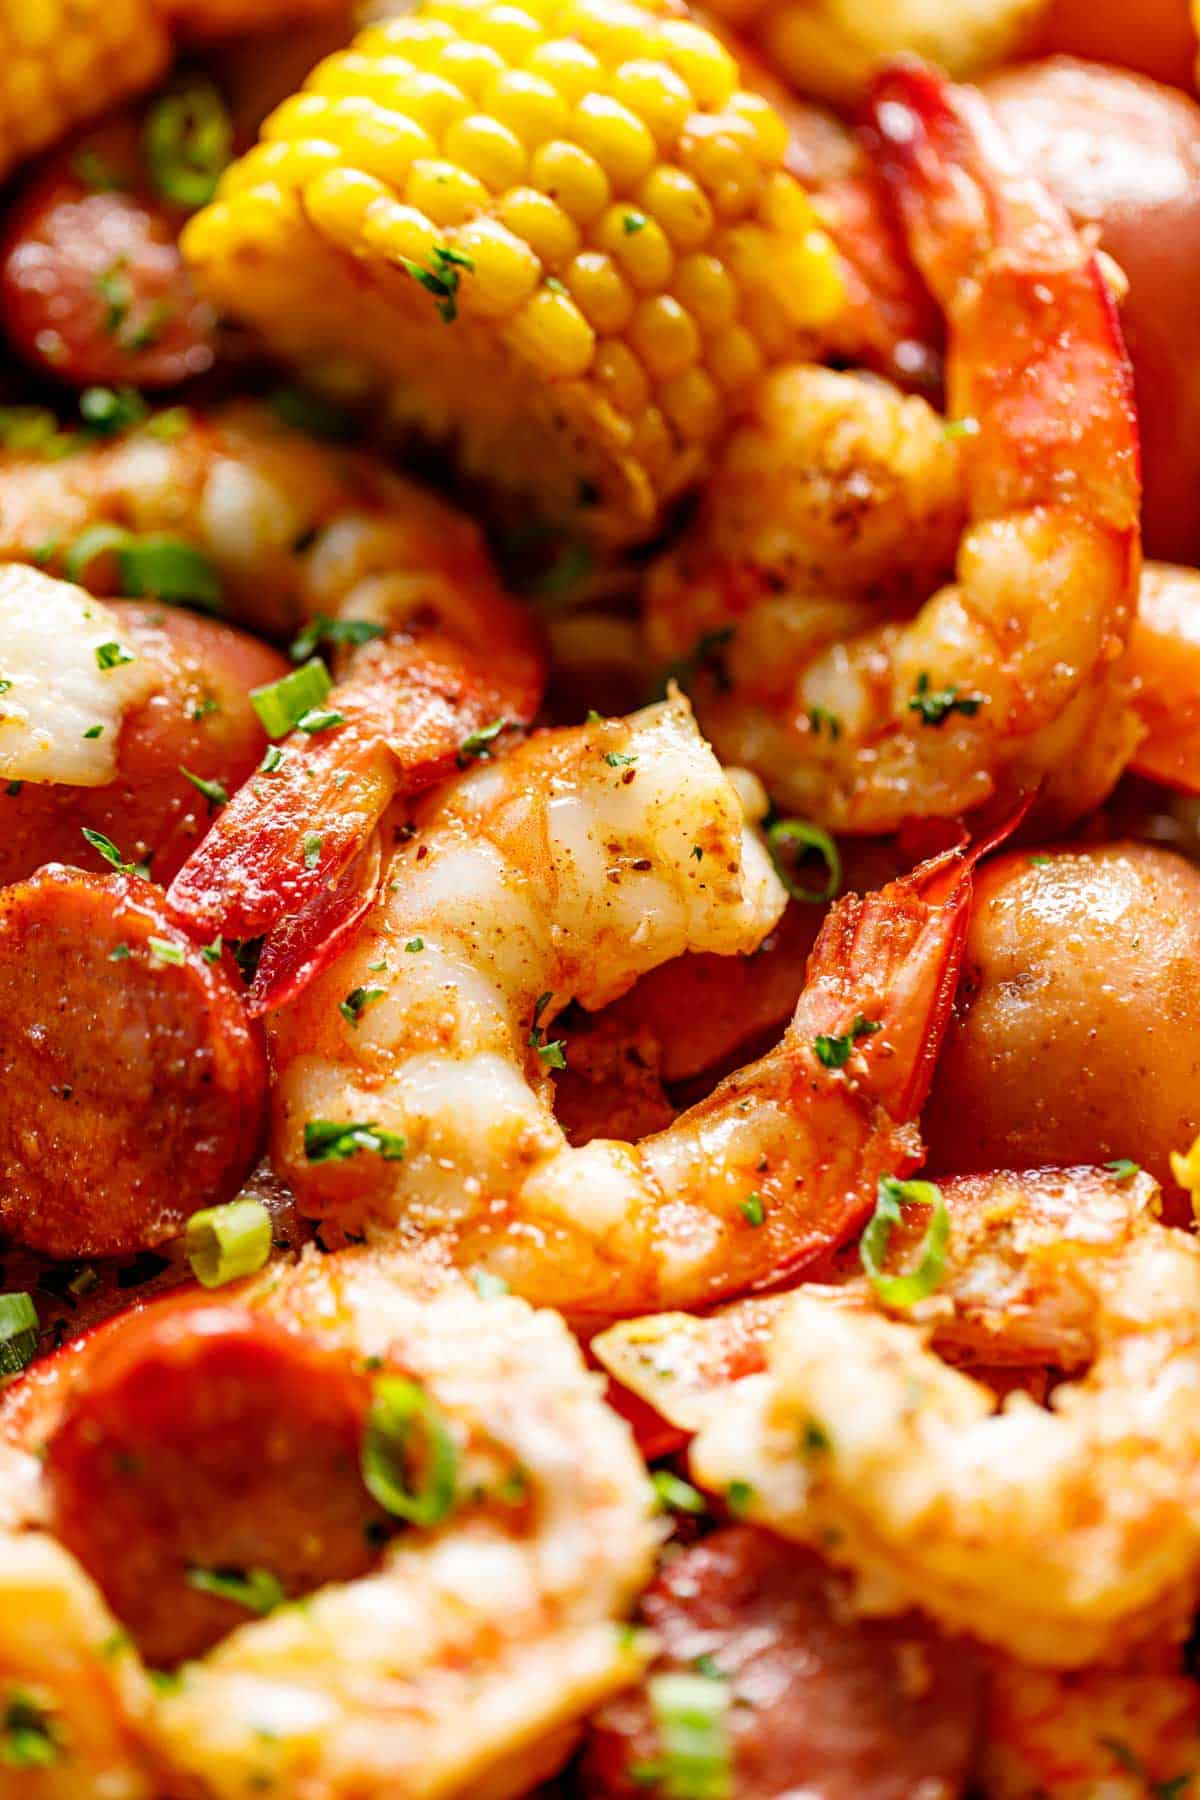 Shrimp Boil smothered in garlic butter and Old Bay seasoning made easy in the oven. Ready in 30 minutes! | cafedelites.com